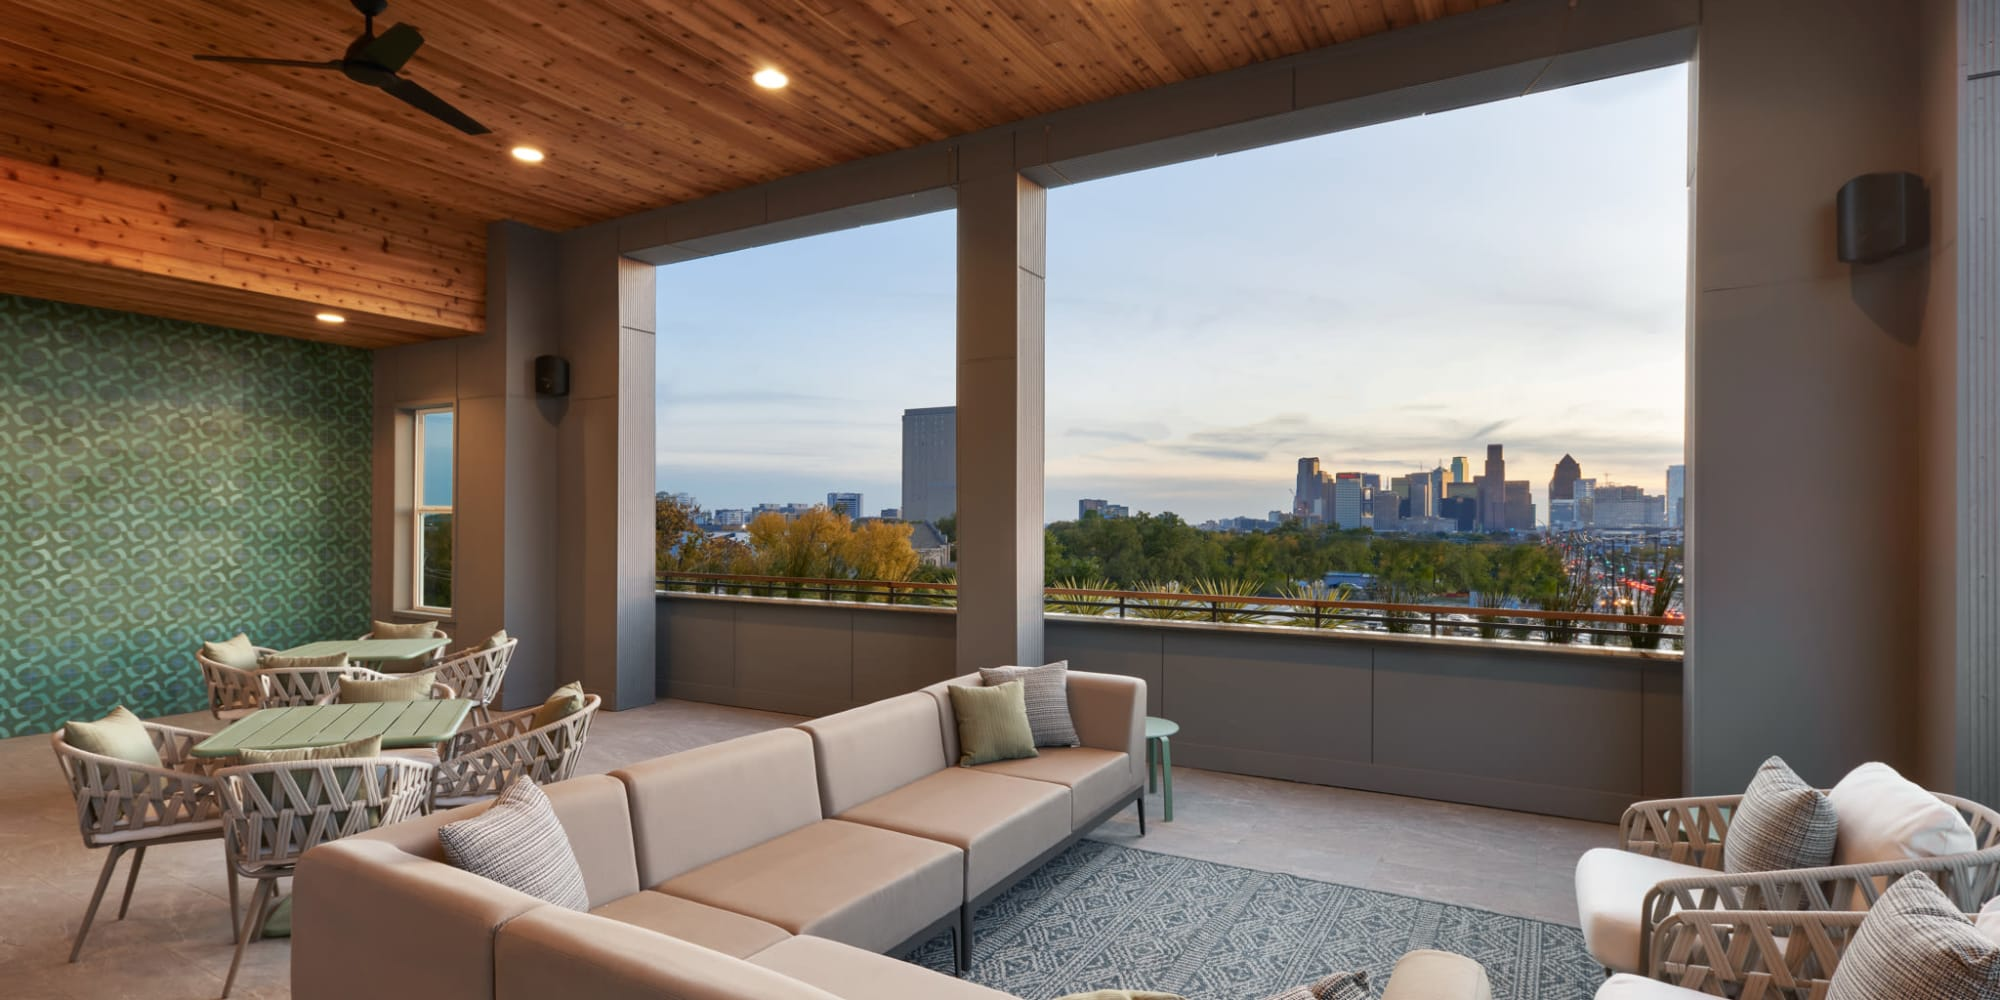 CREA Management in Austin, Texas offers multifamily housing with stunning views